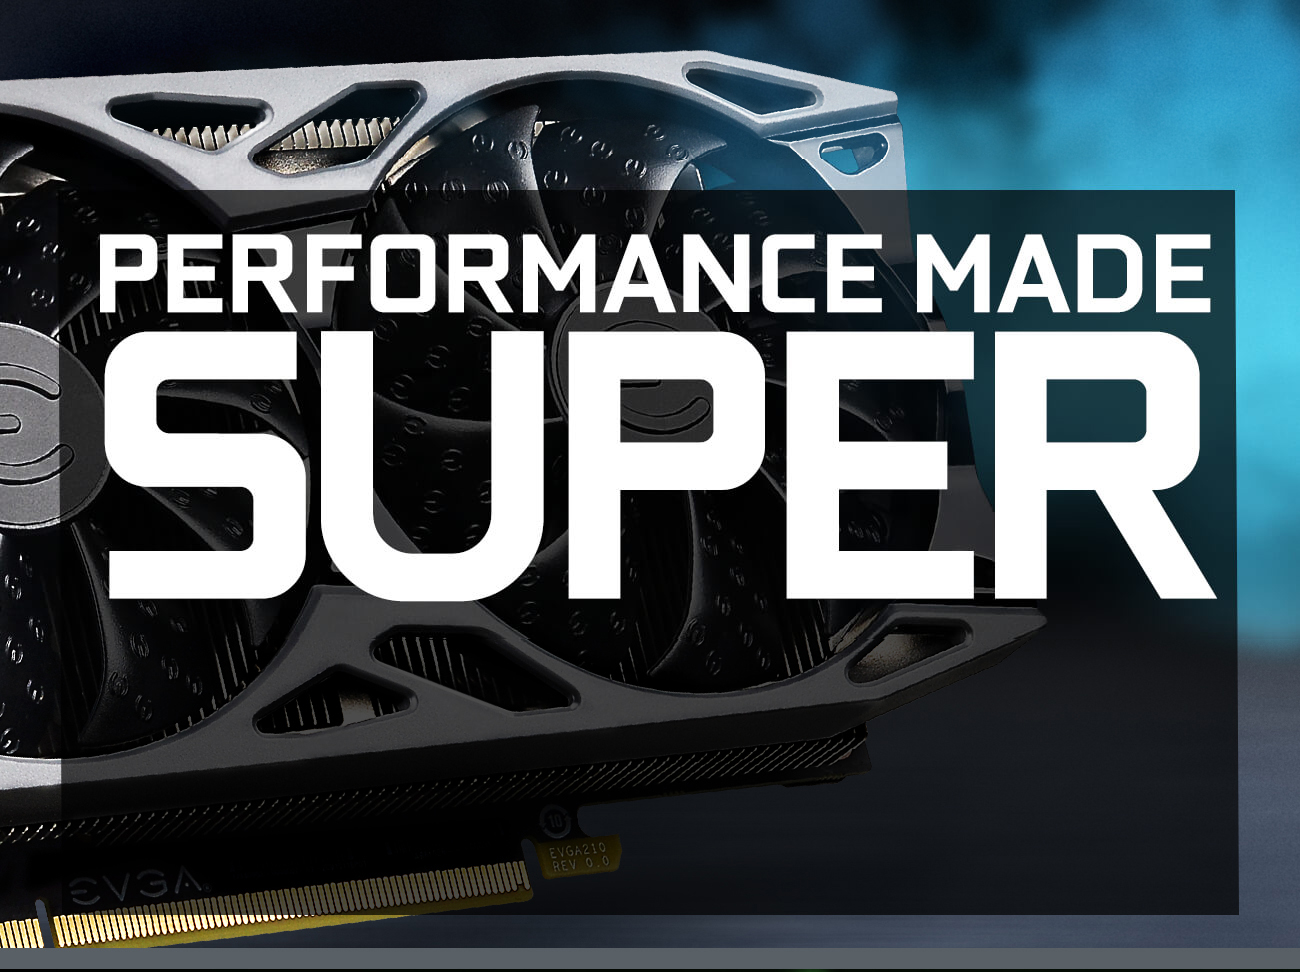 GeForce GTX 1650 SUPER gaming cards cloase-up and performance made super icon